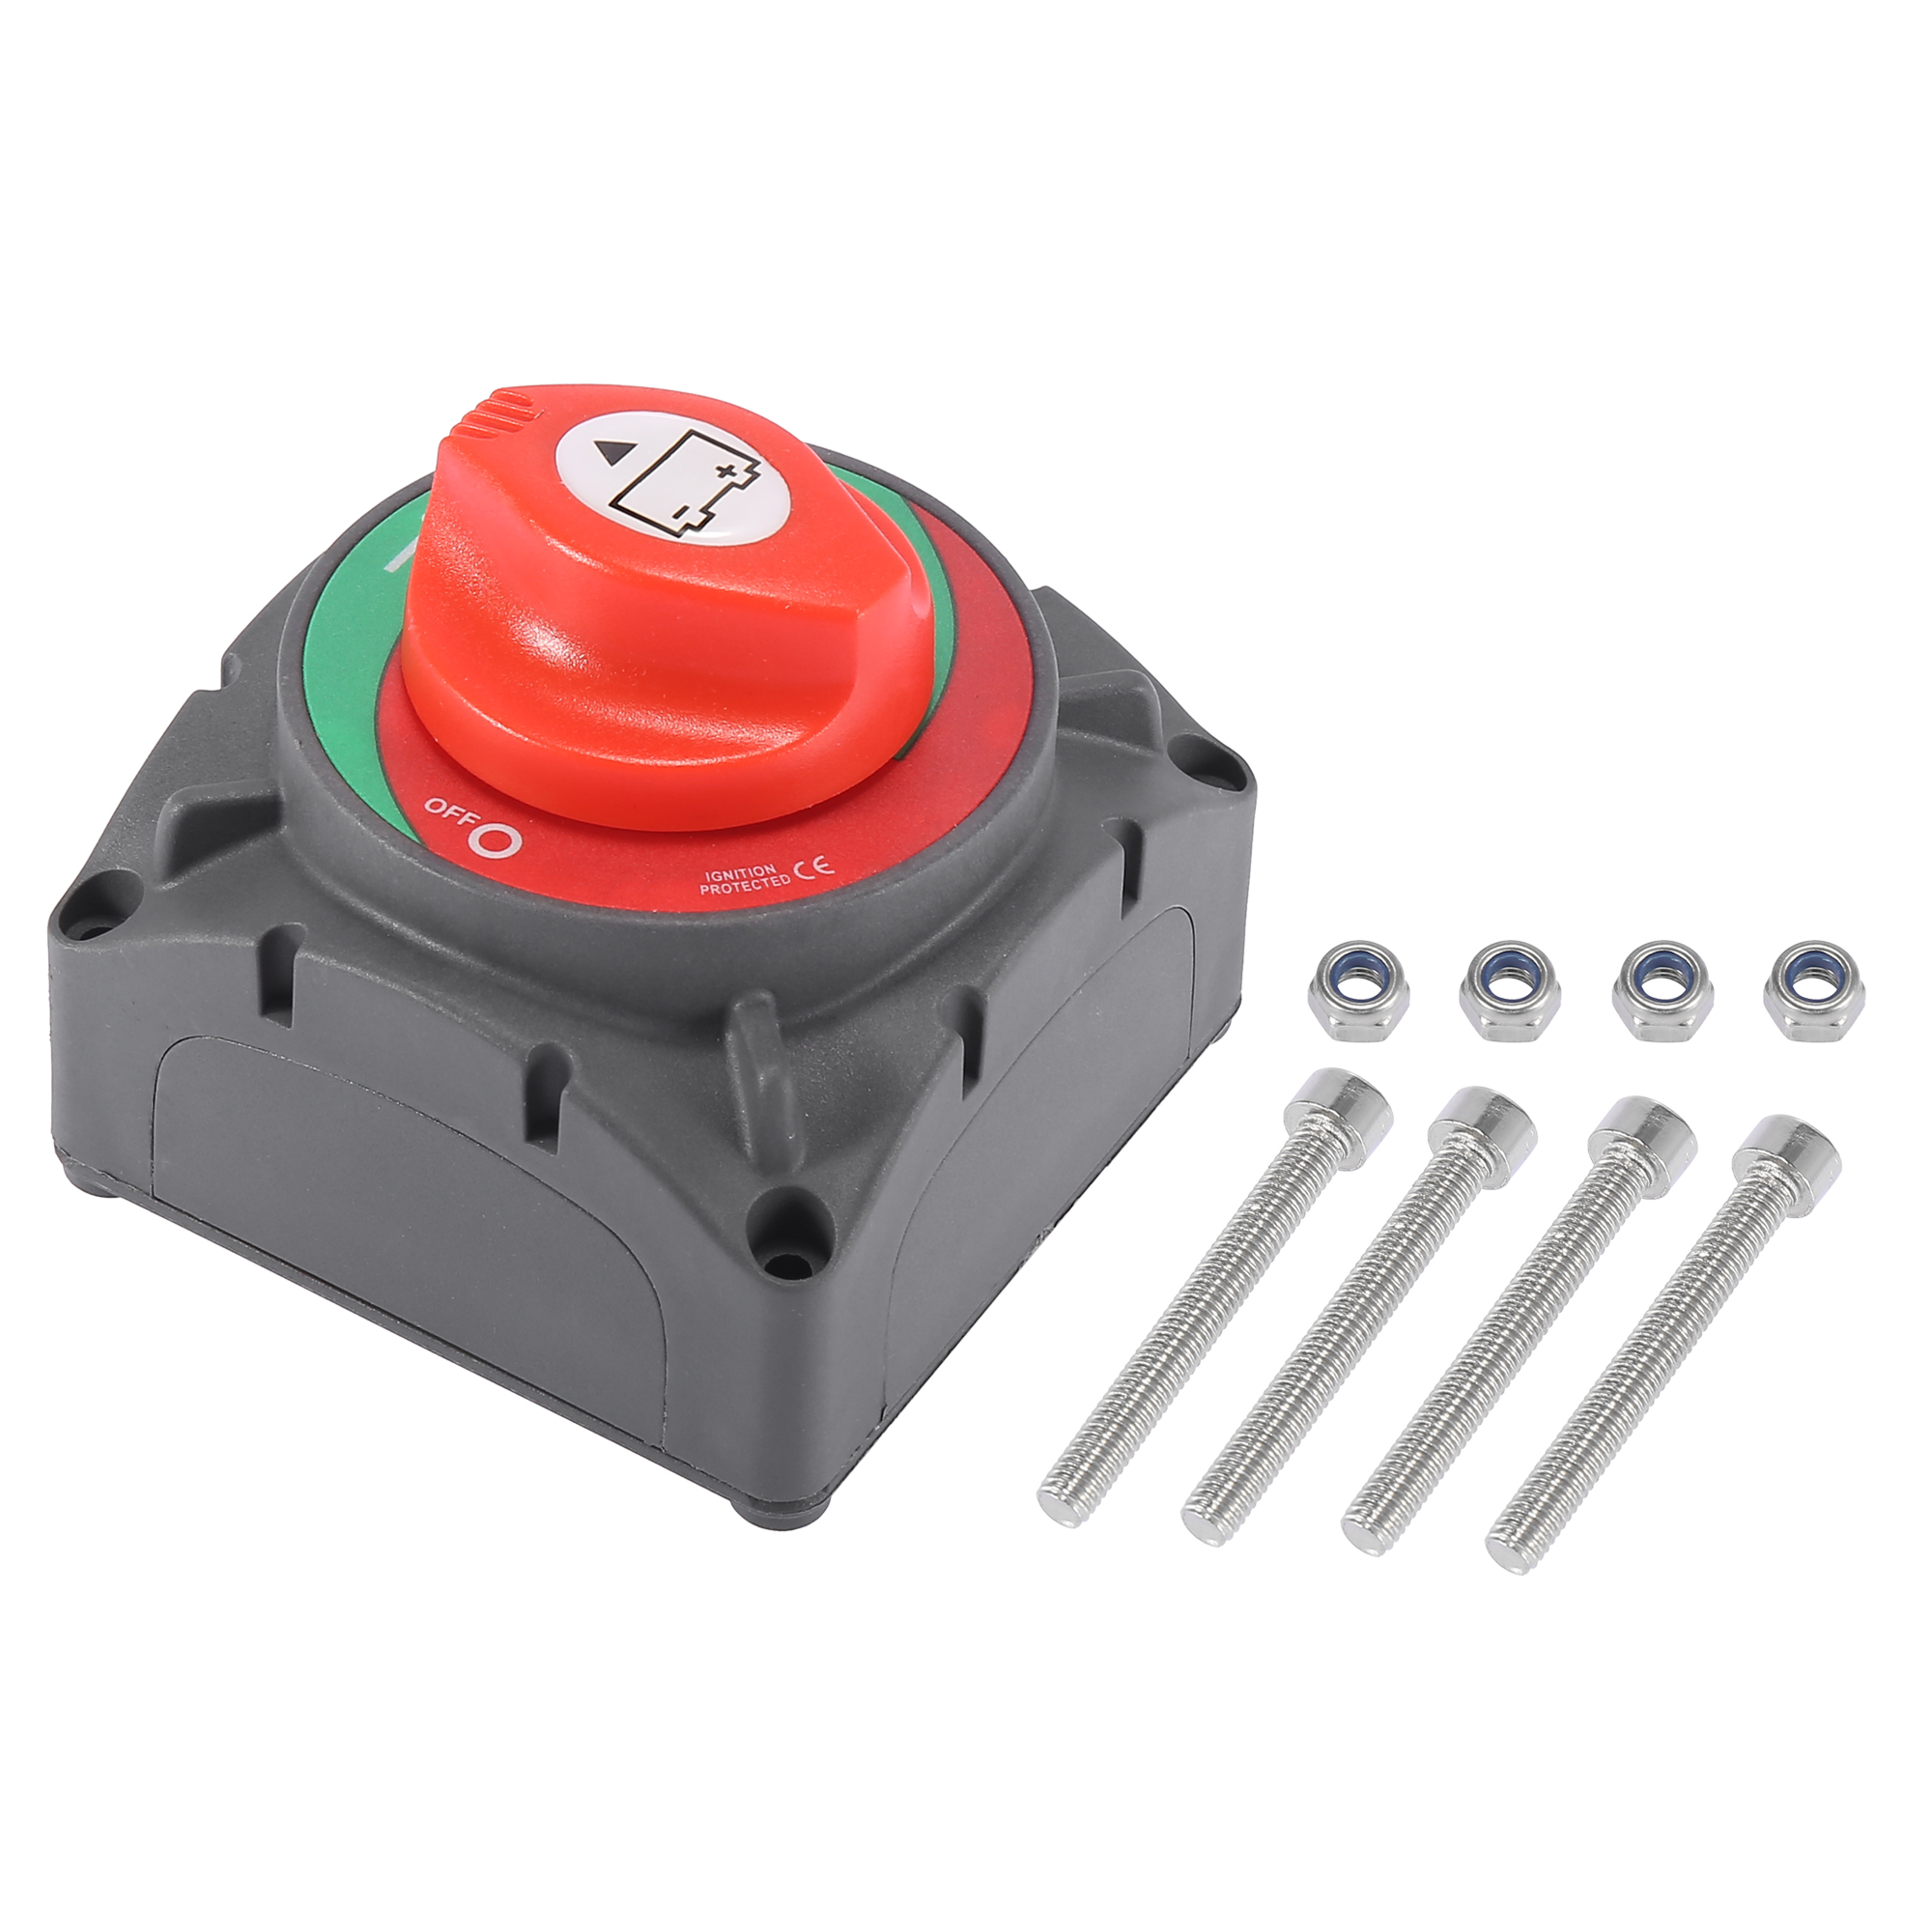 Battery Switch Kit 12V to 48V 600A Car Boat Battery Master Disconnect Switch